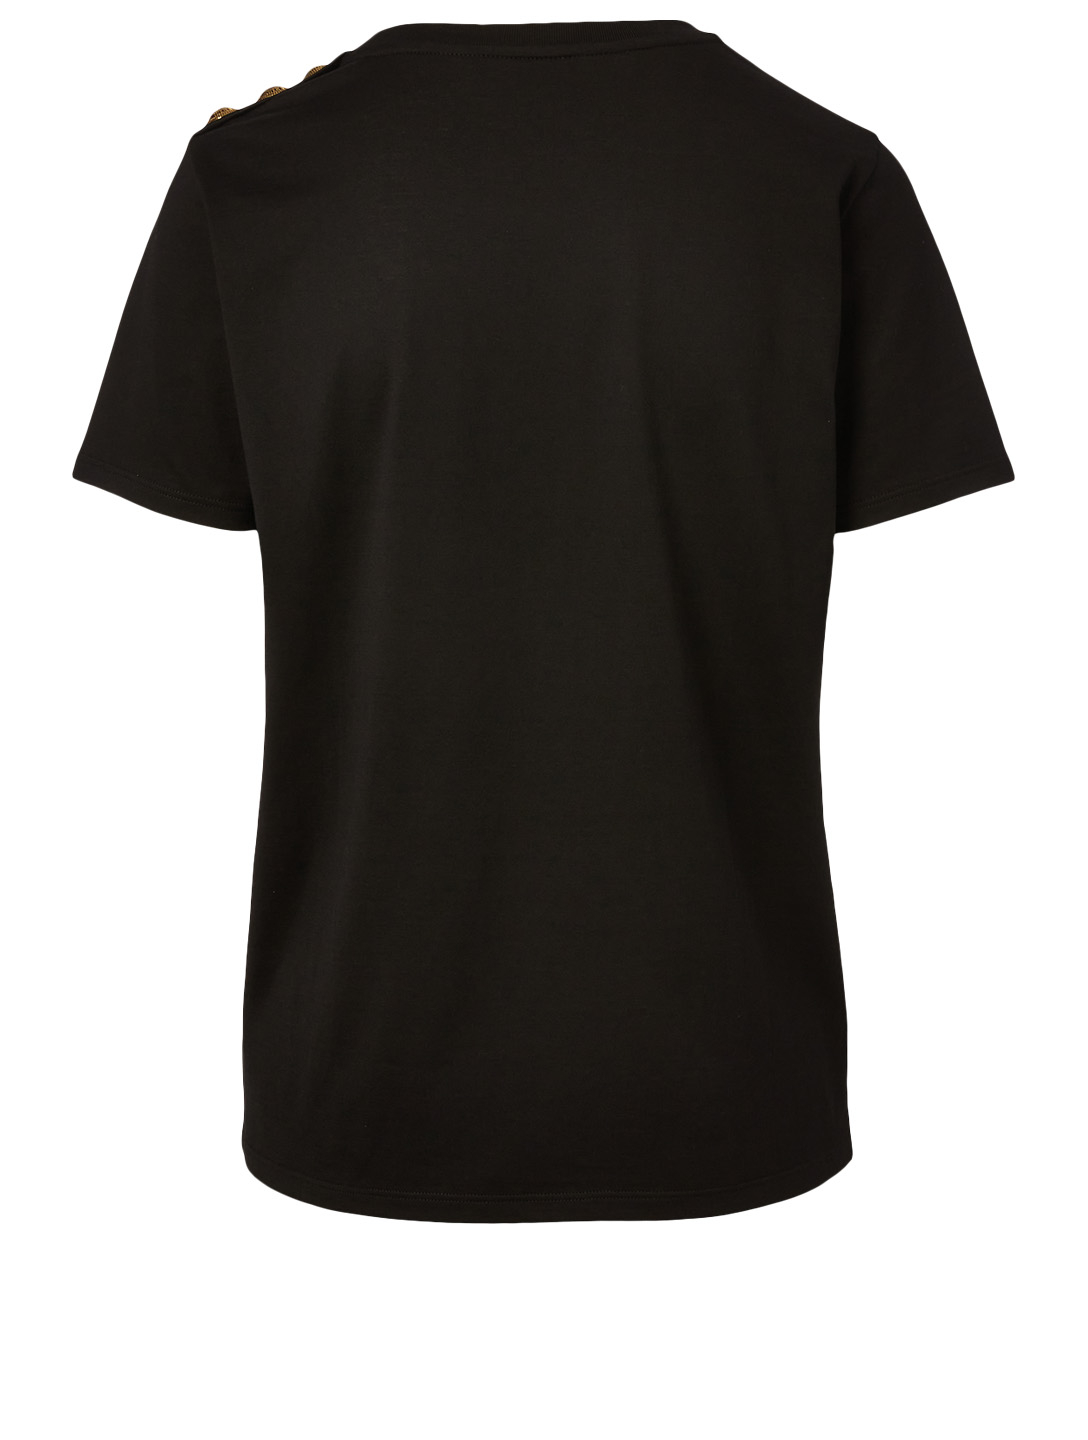 BALMAIN Cotton Relaxed T-Shirt With Buttons Women's Black